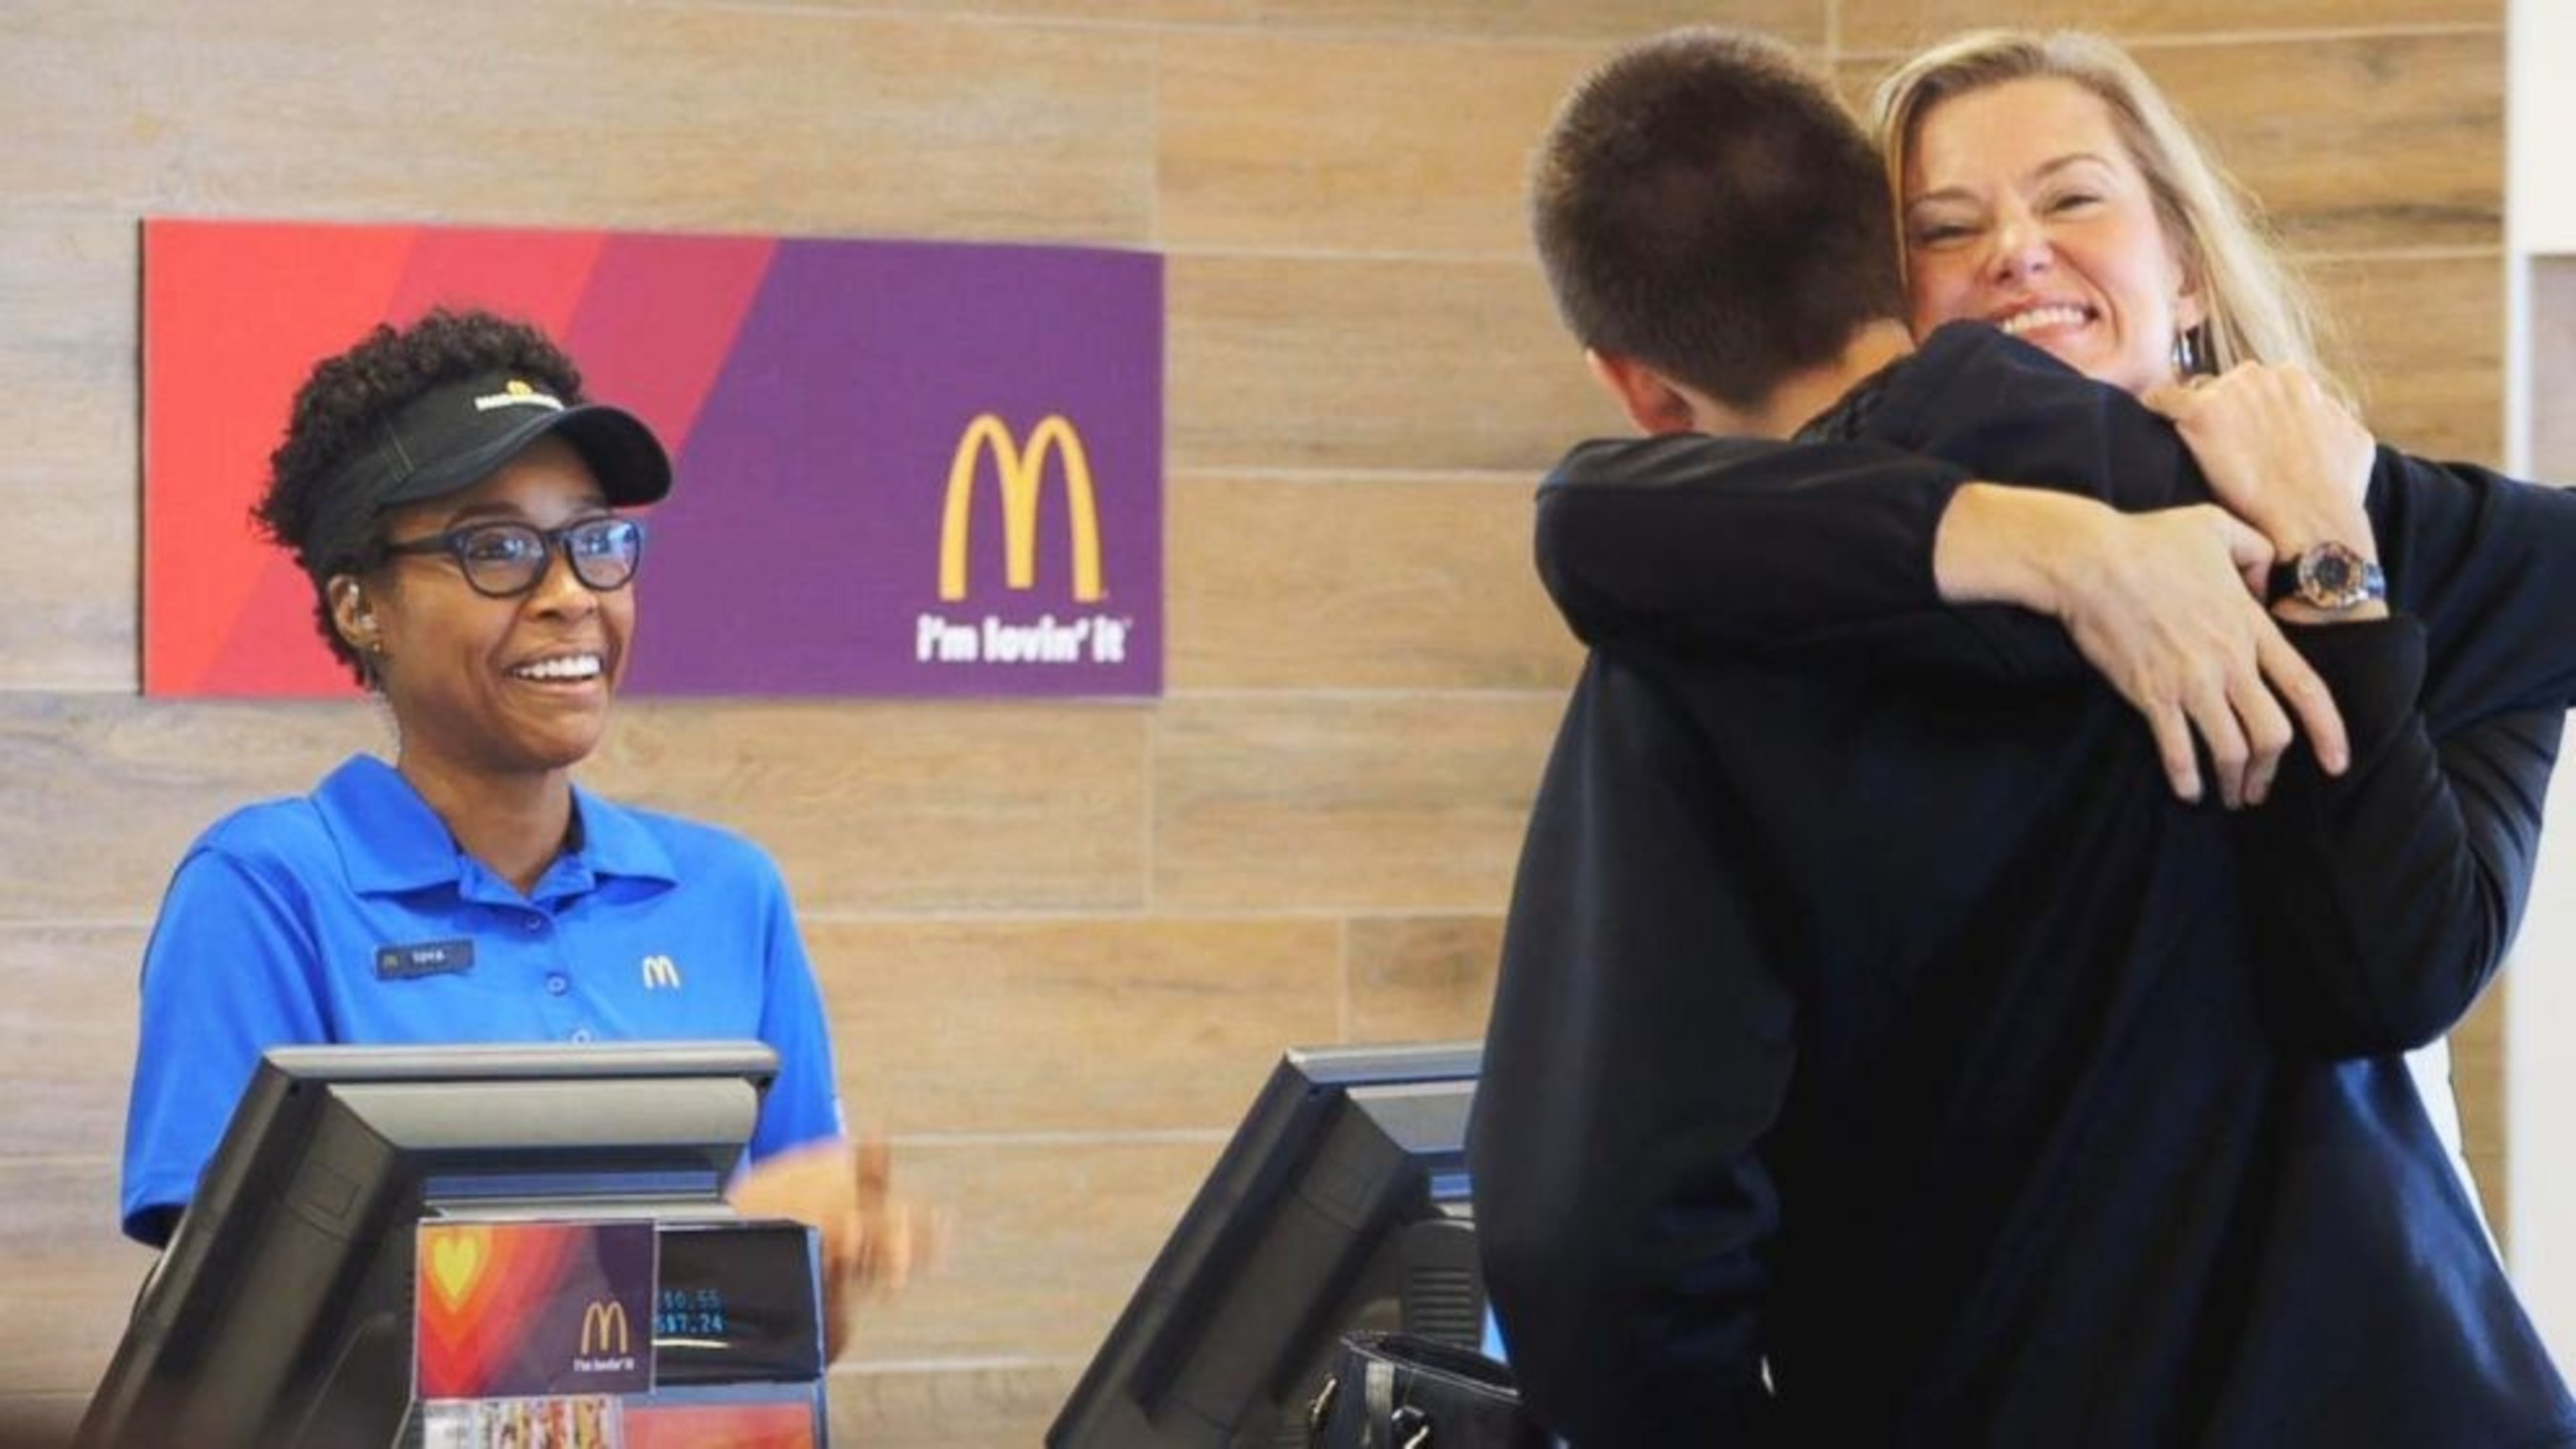 McDONALD'S SHARES LOVIN' WITH NEW YORK TRI-STATE CUSTOMERS